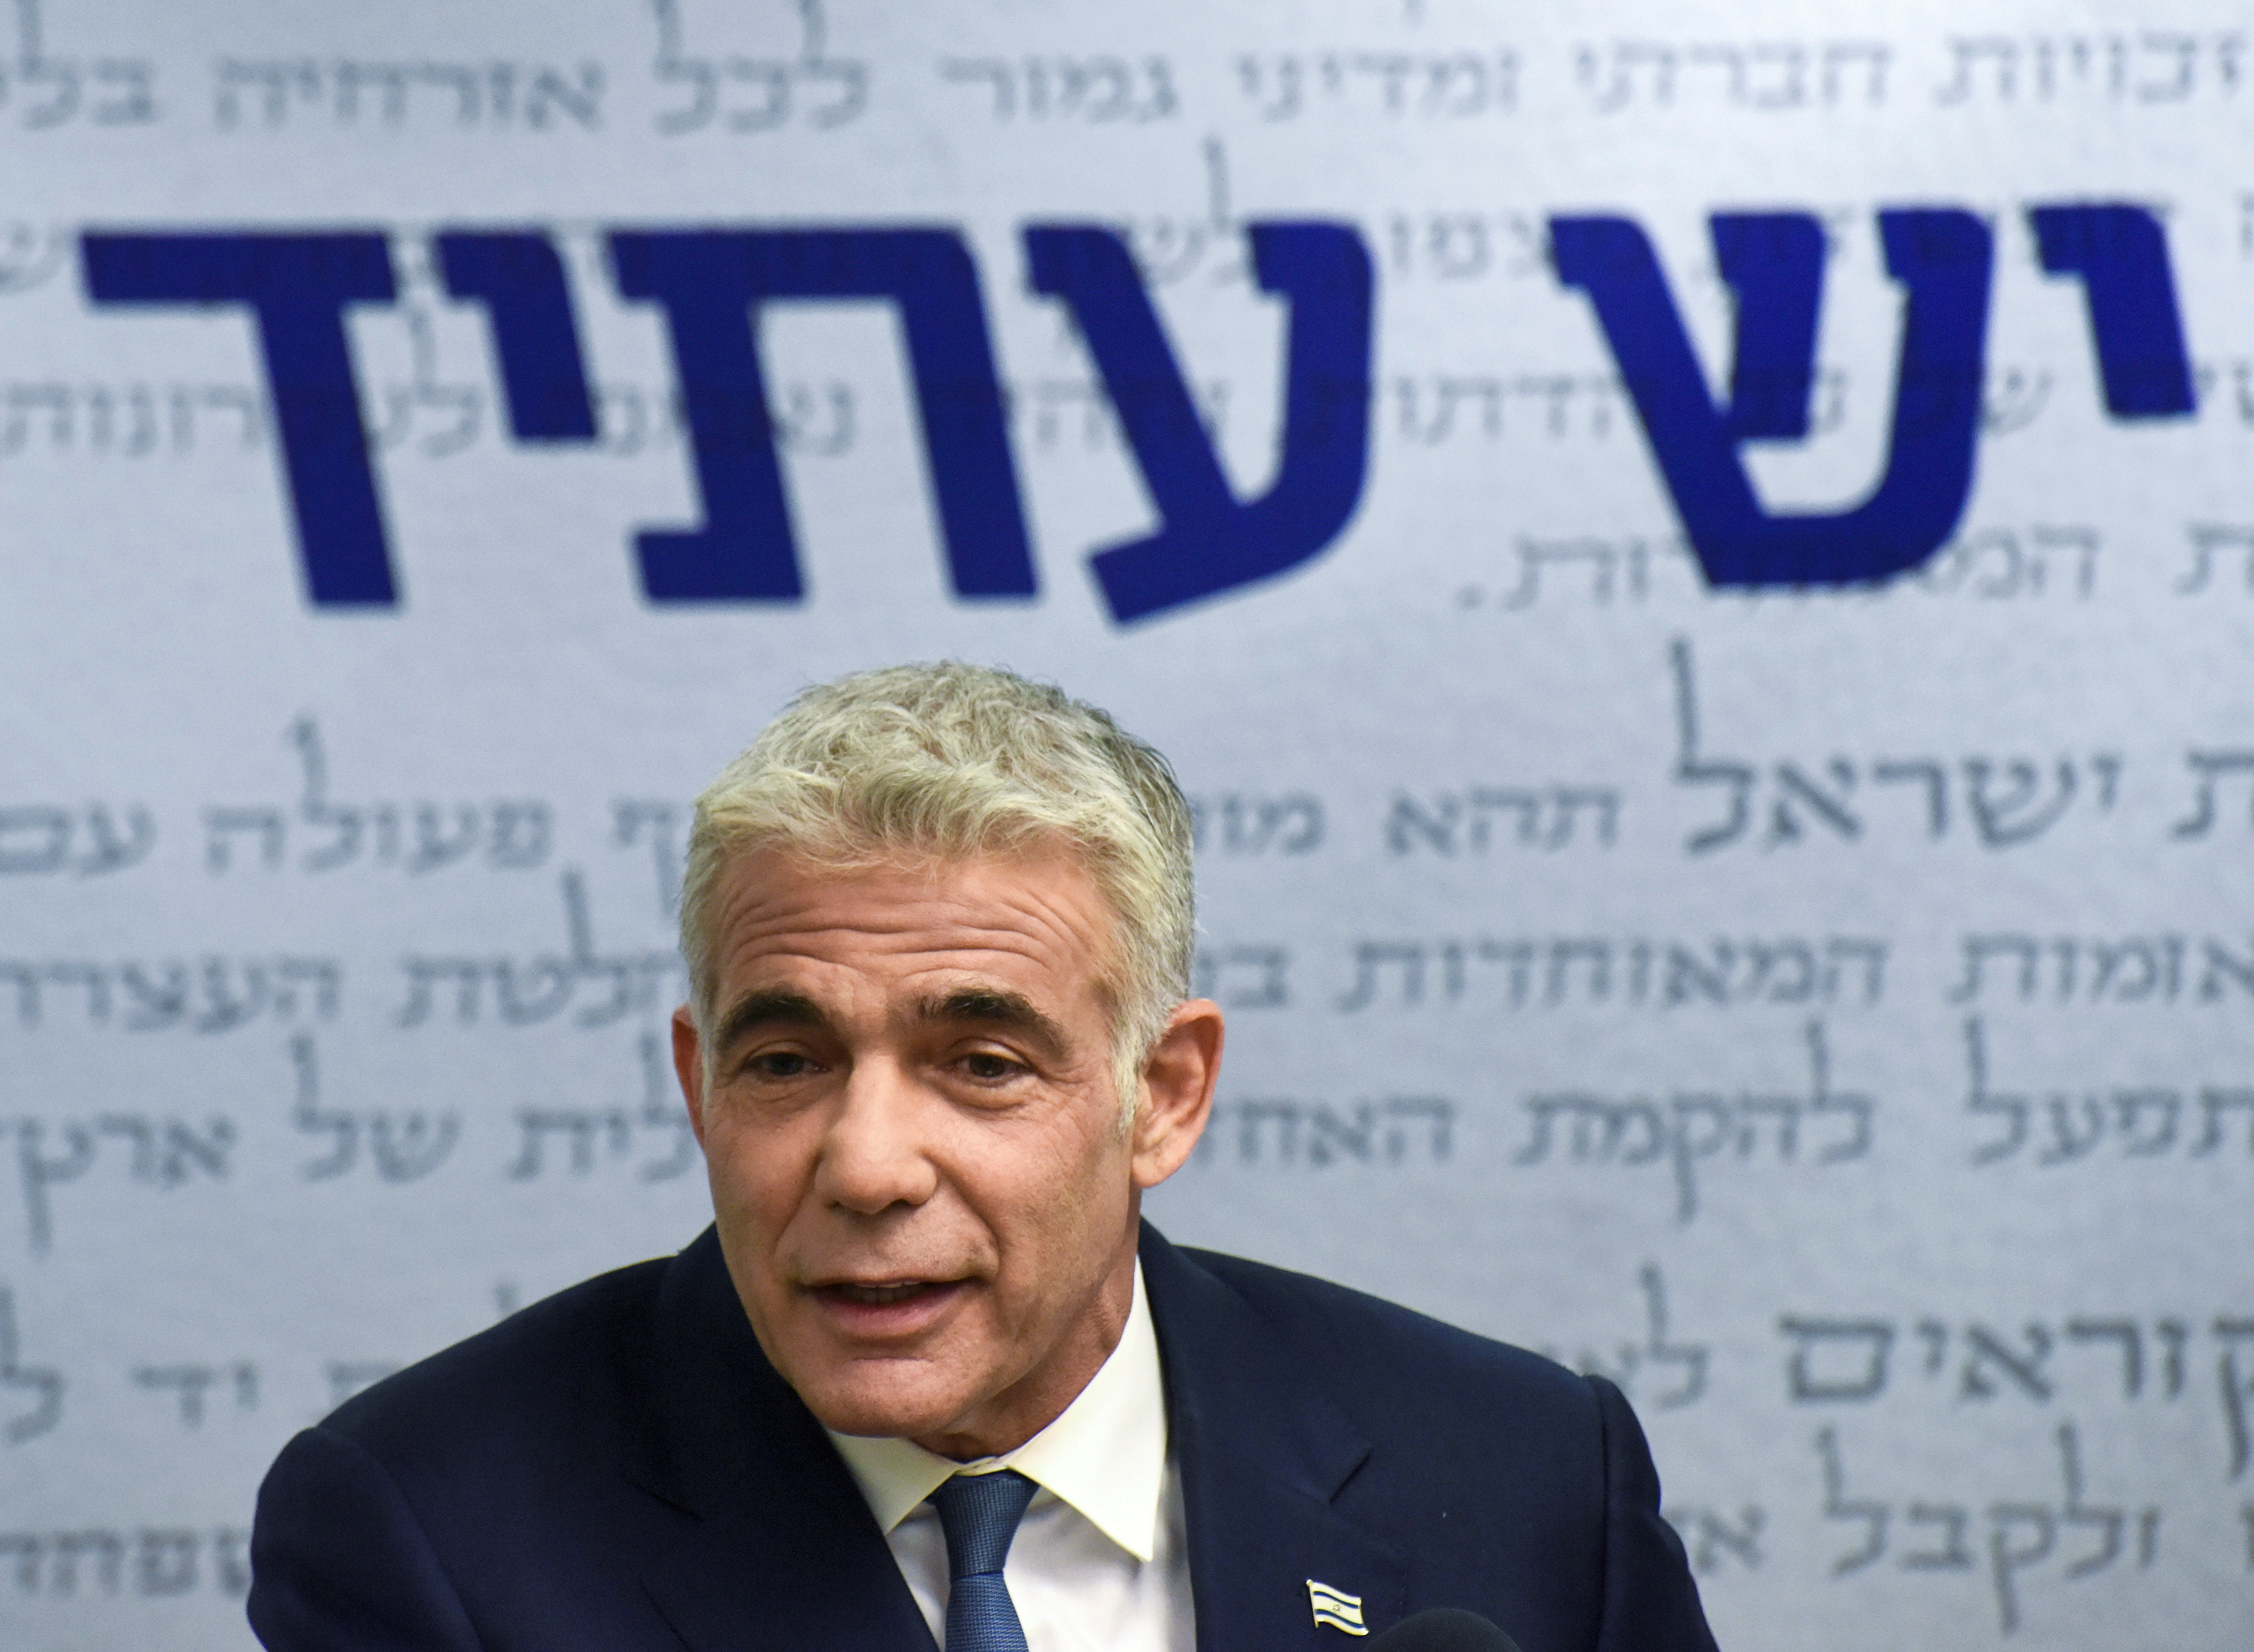 Yair Lapid, head of the centrist Yesh Atid party, delivers a statement to the press before the party faction meeting at the Knesset, Israel's parliament, in Jerusalem May 31, 2021. Debbie Hill/Pool via REUTERS